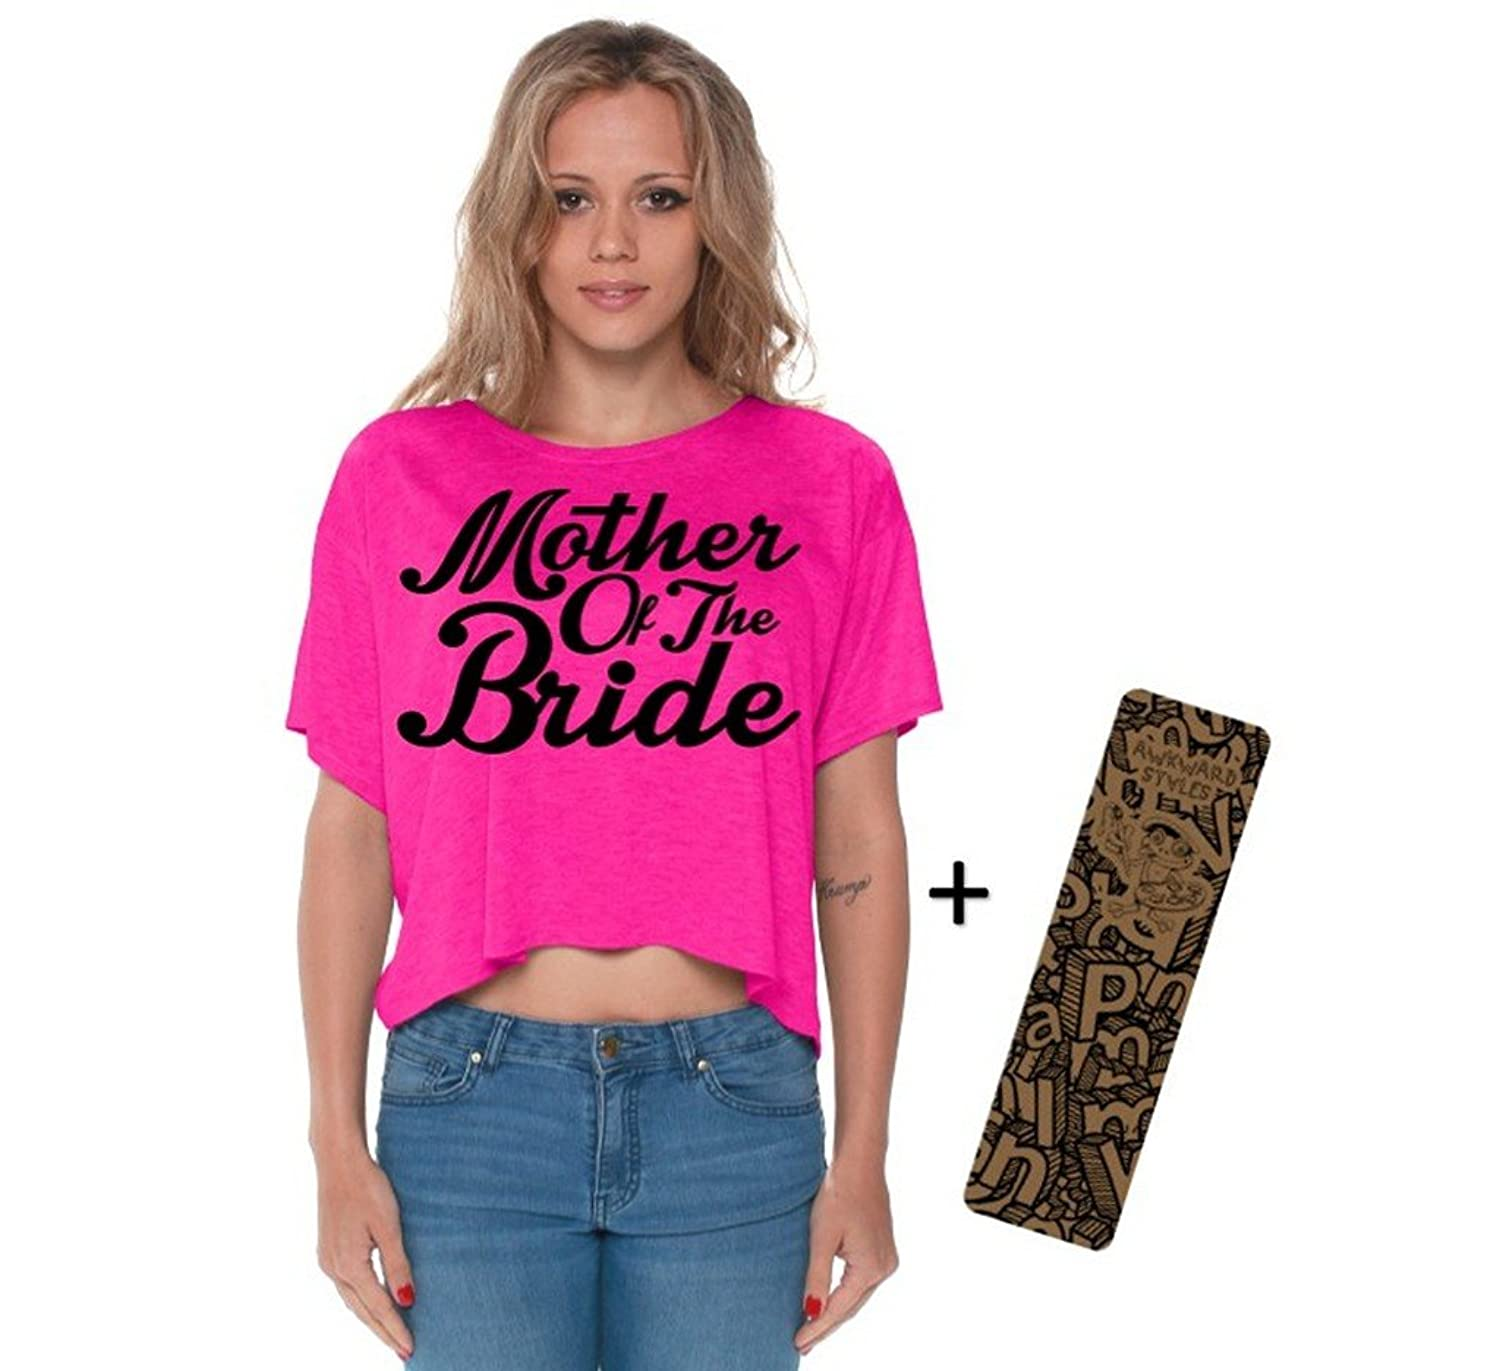 Awkwardstyles Mother Of The Bride Boxy Crewneck Flowy Crop Top B + Bookmark